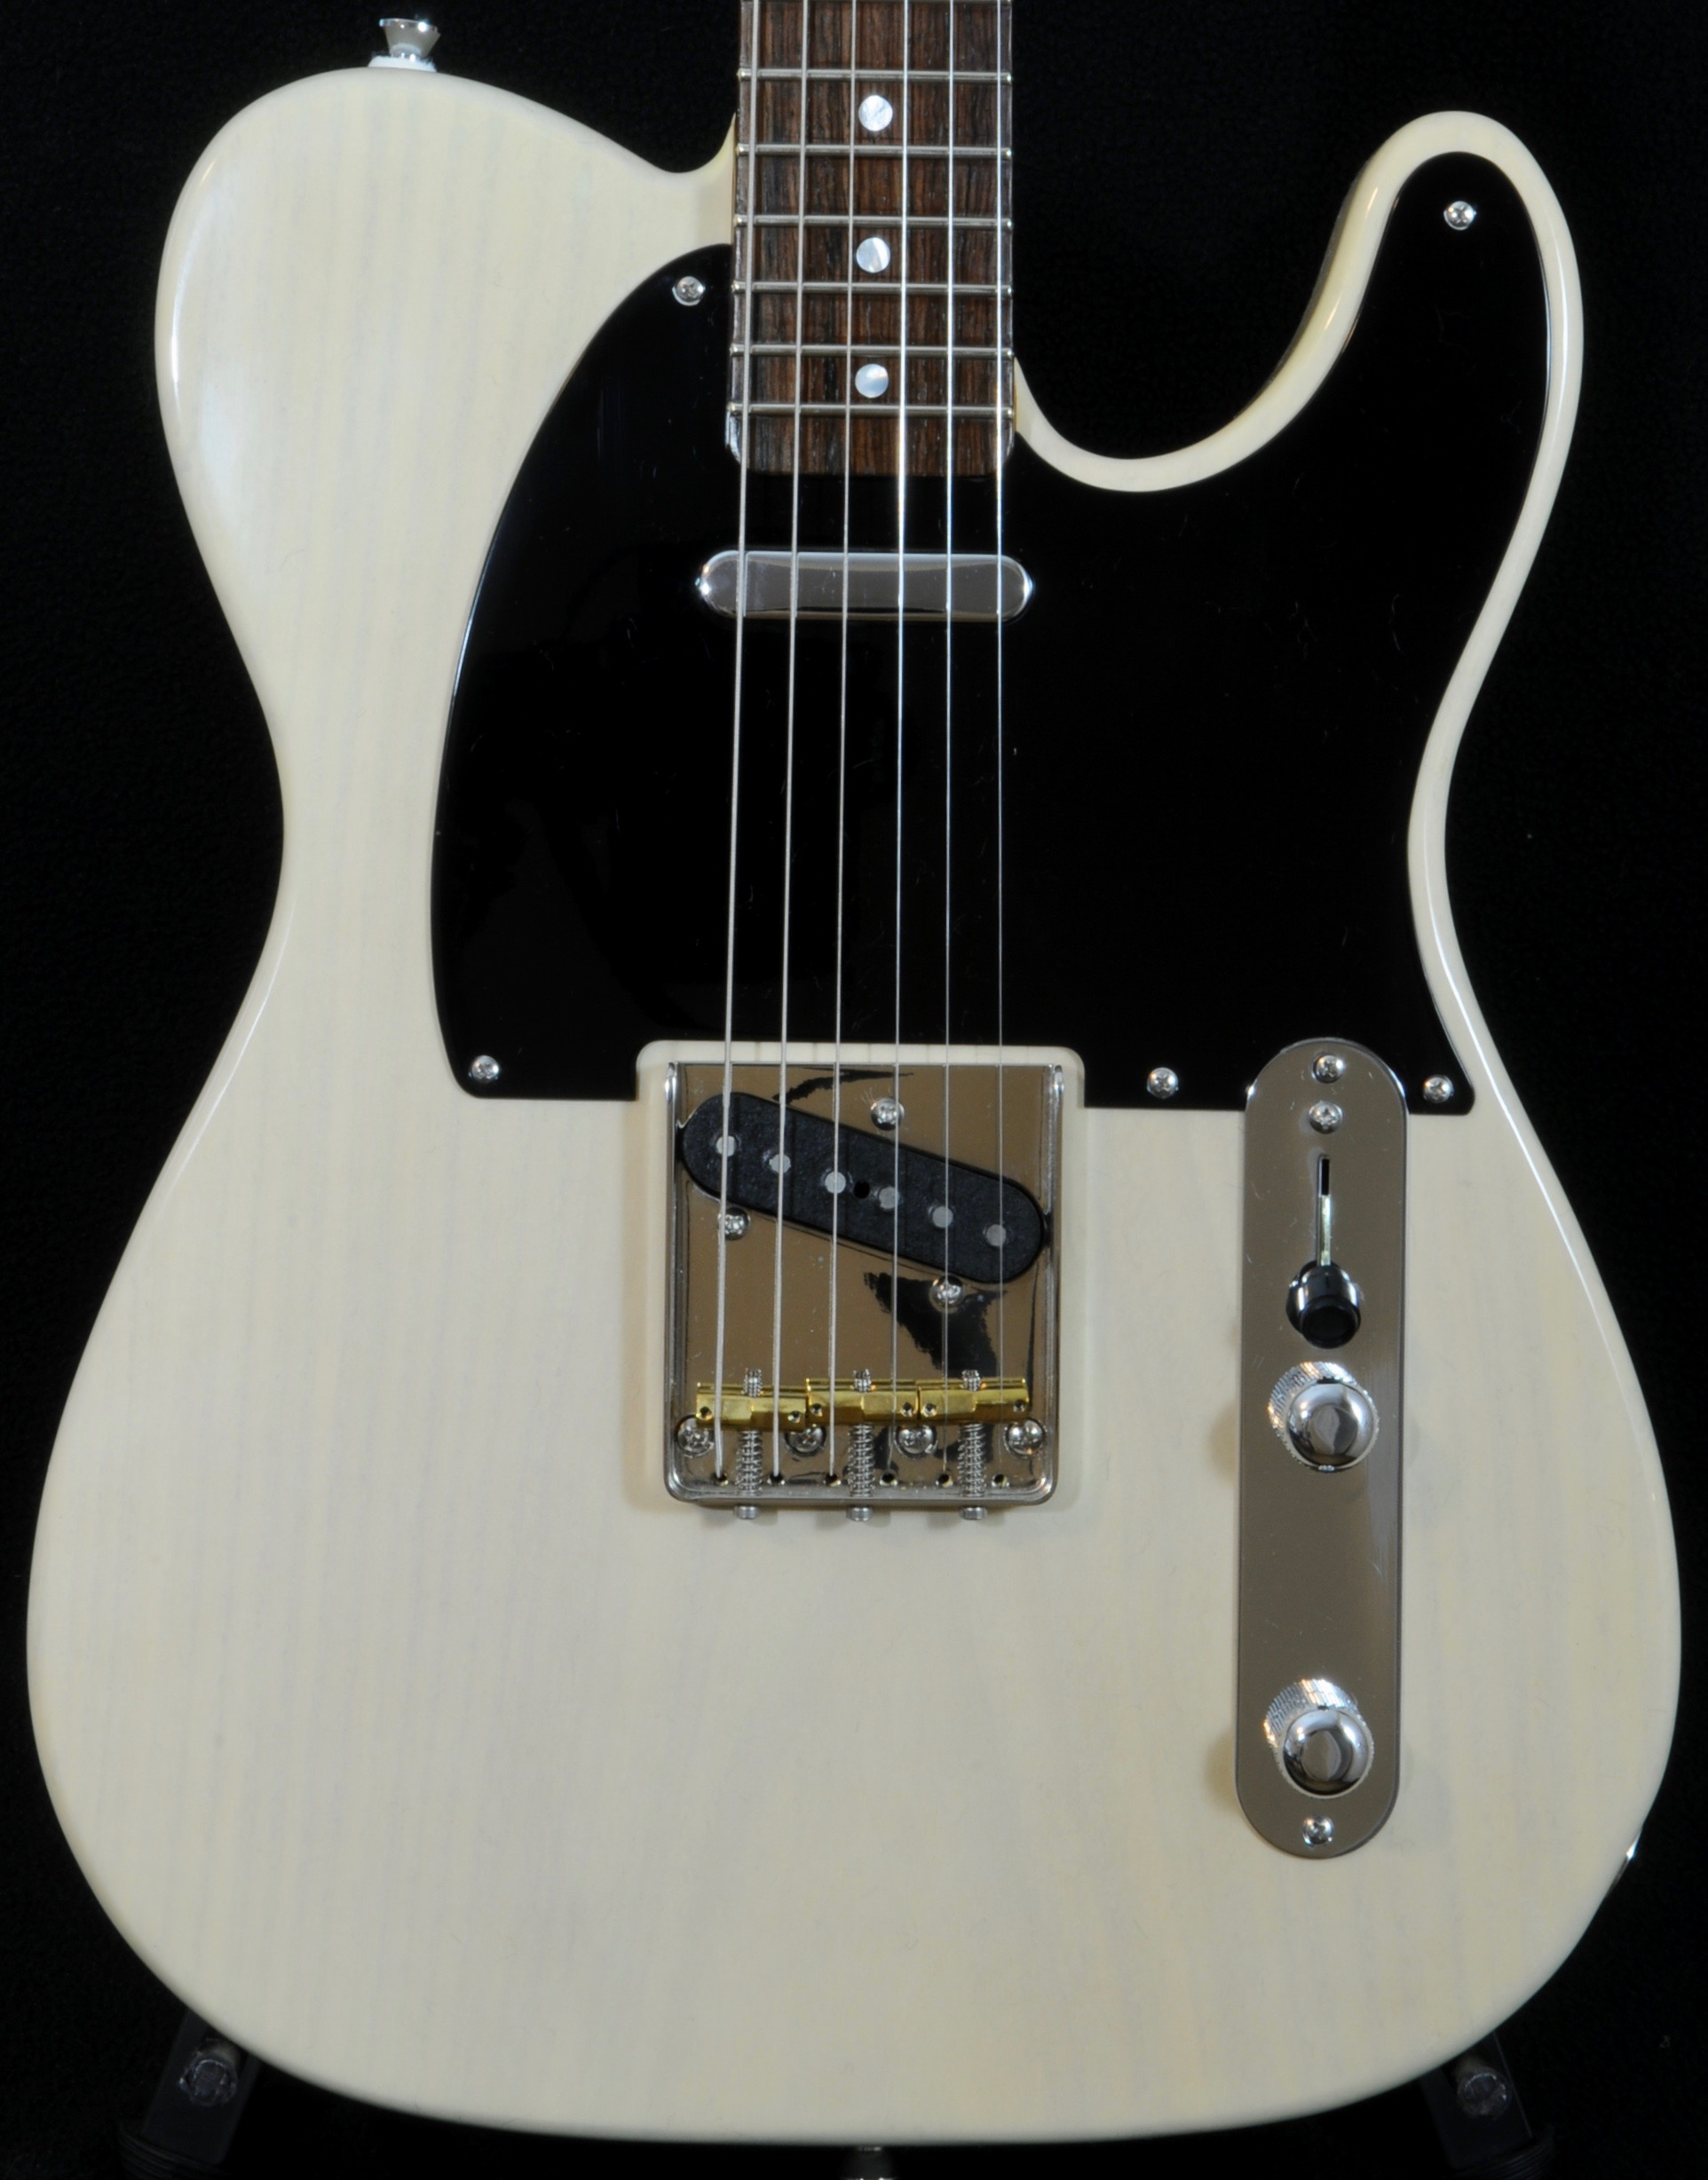 2018 Wysocki Tele :  Just 5lb-9oz  – ANCIENT Woods!